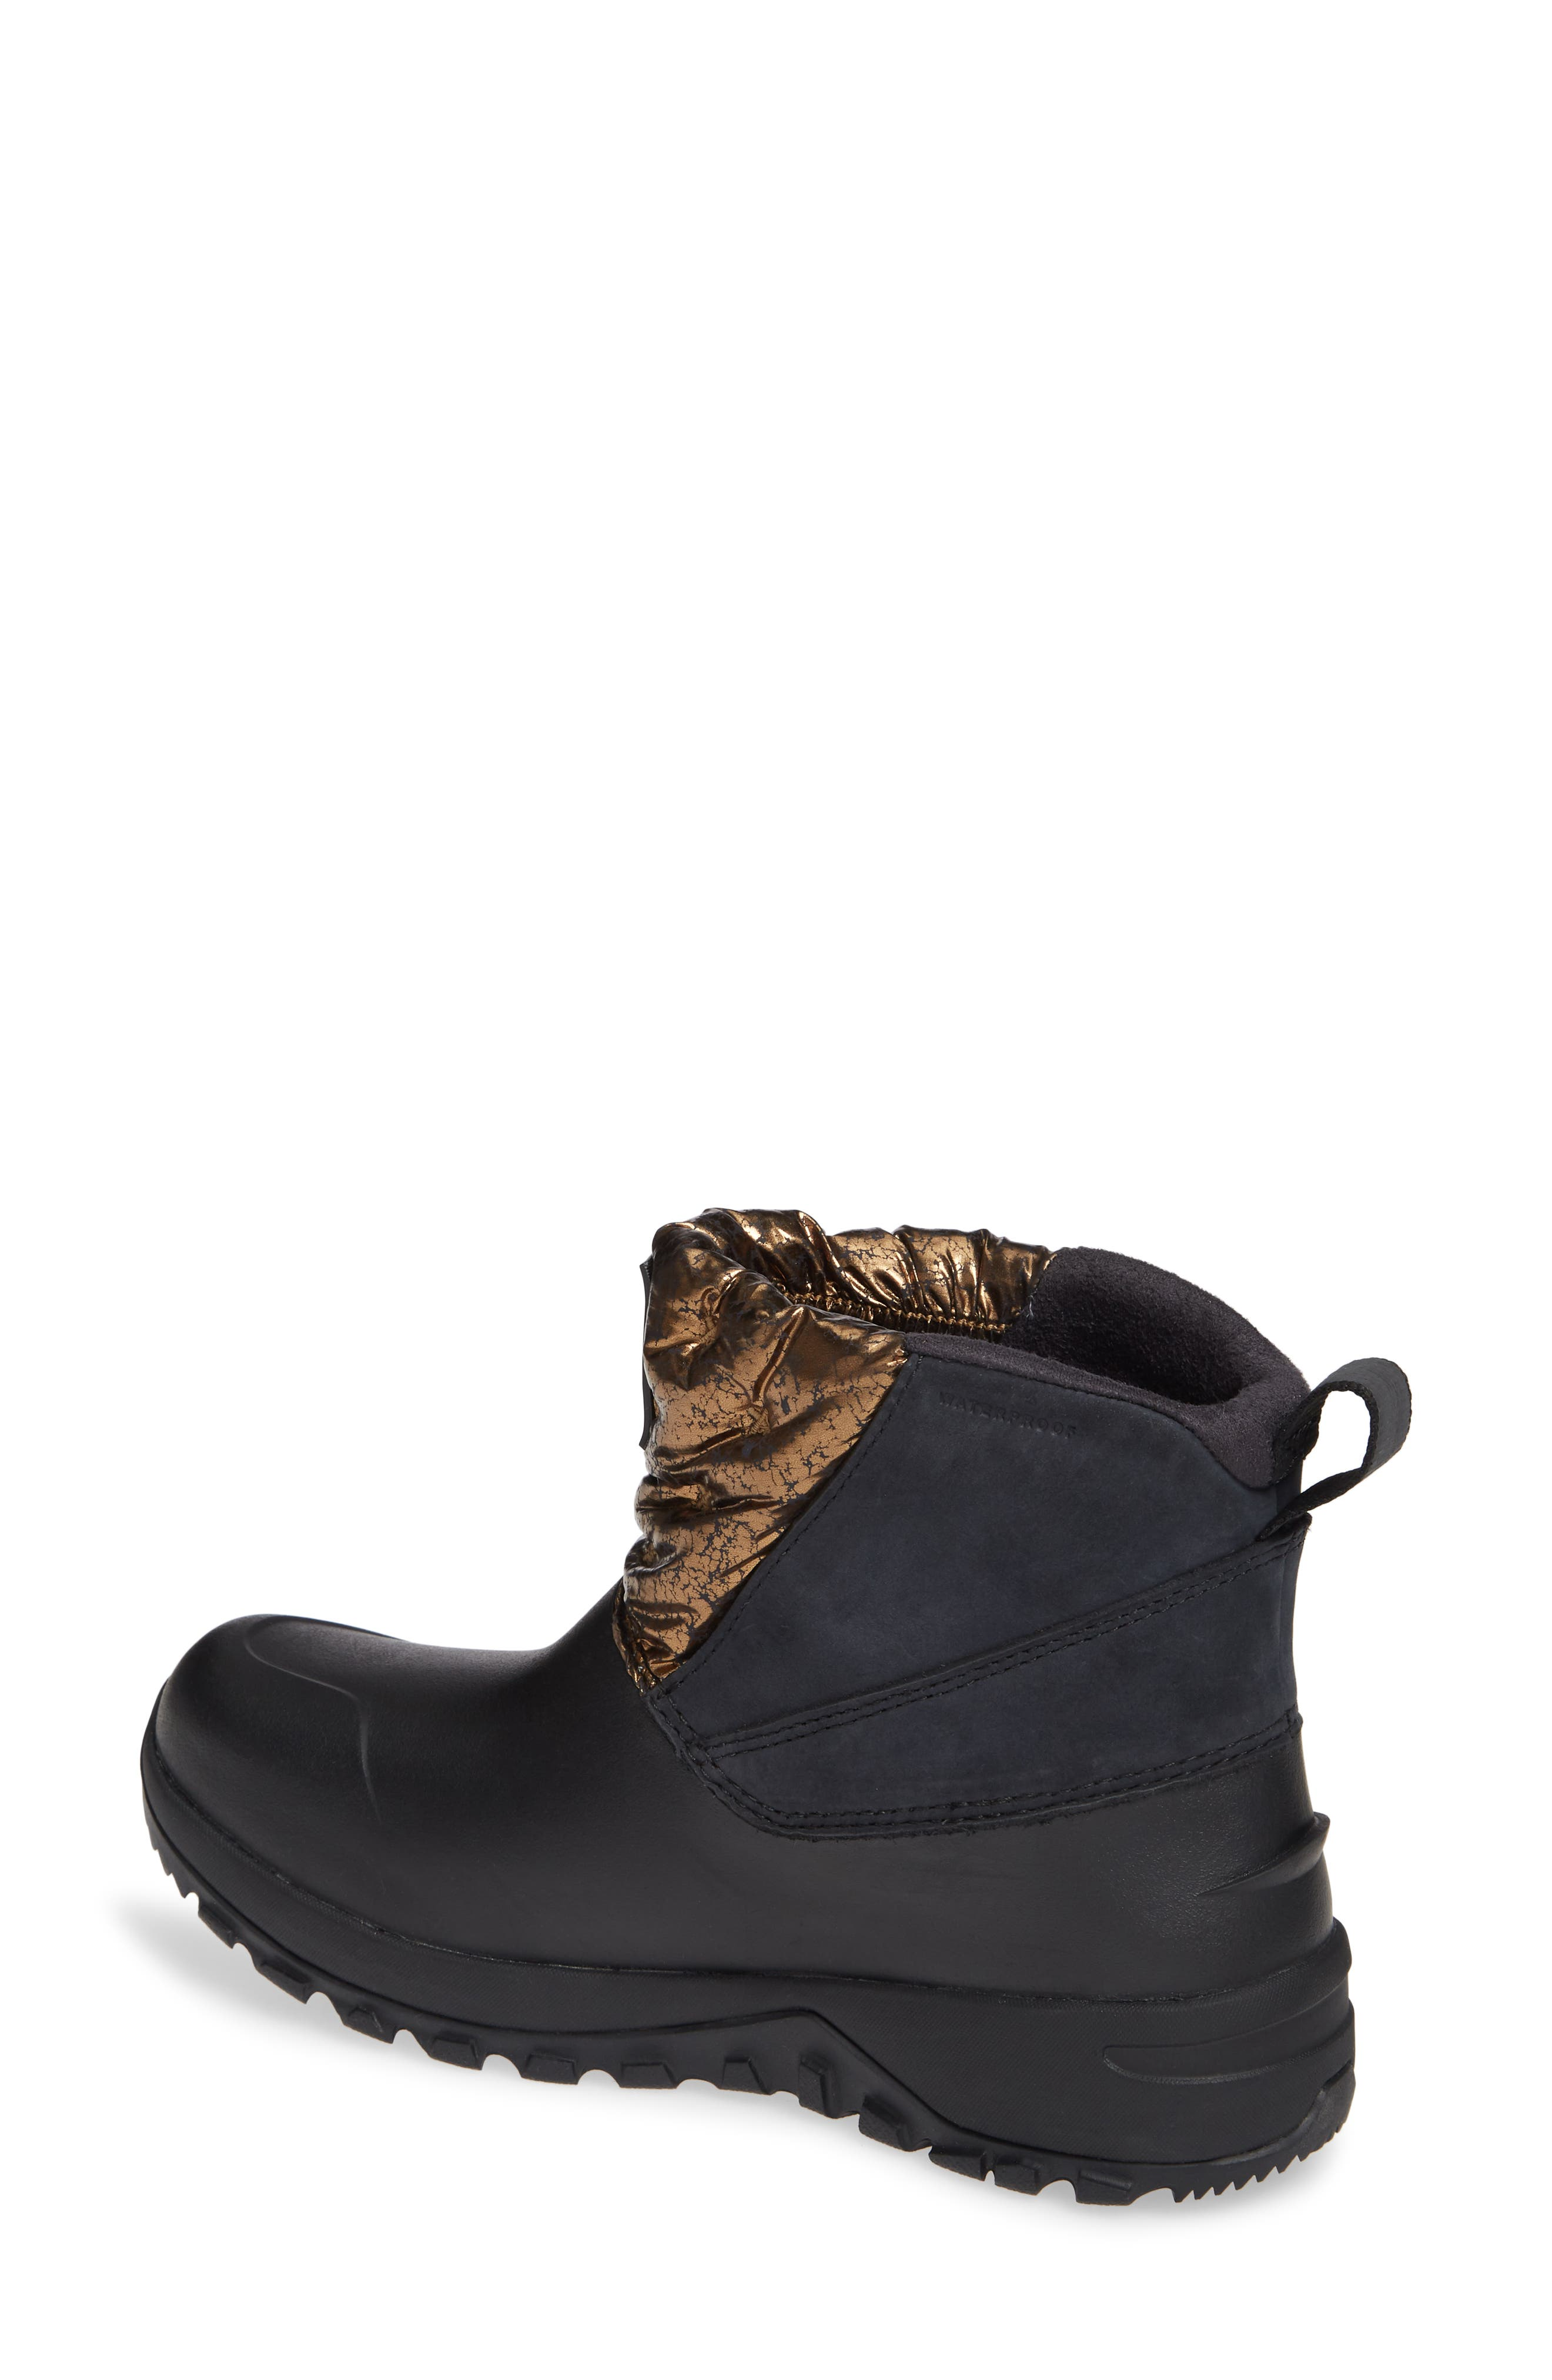 fdef871f8 Women's The North Face Boots | Nordstrom